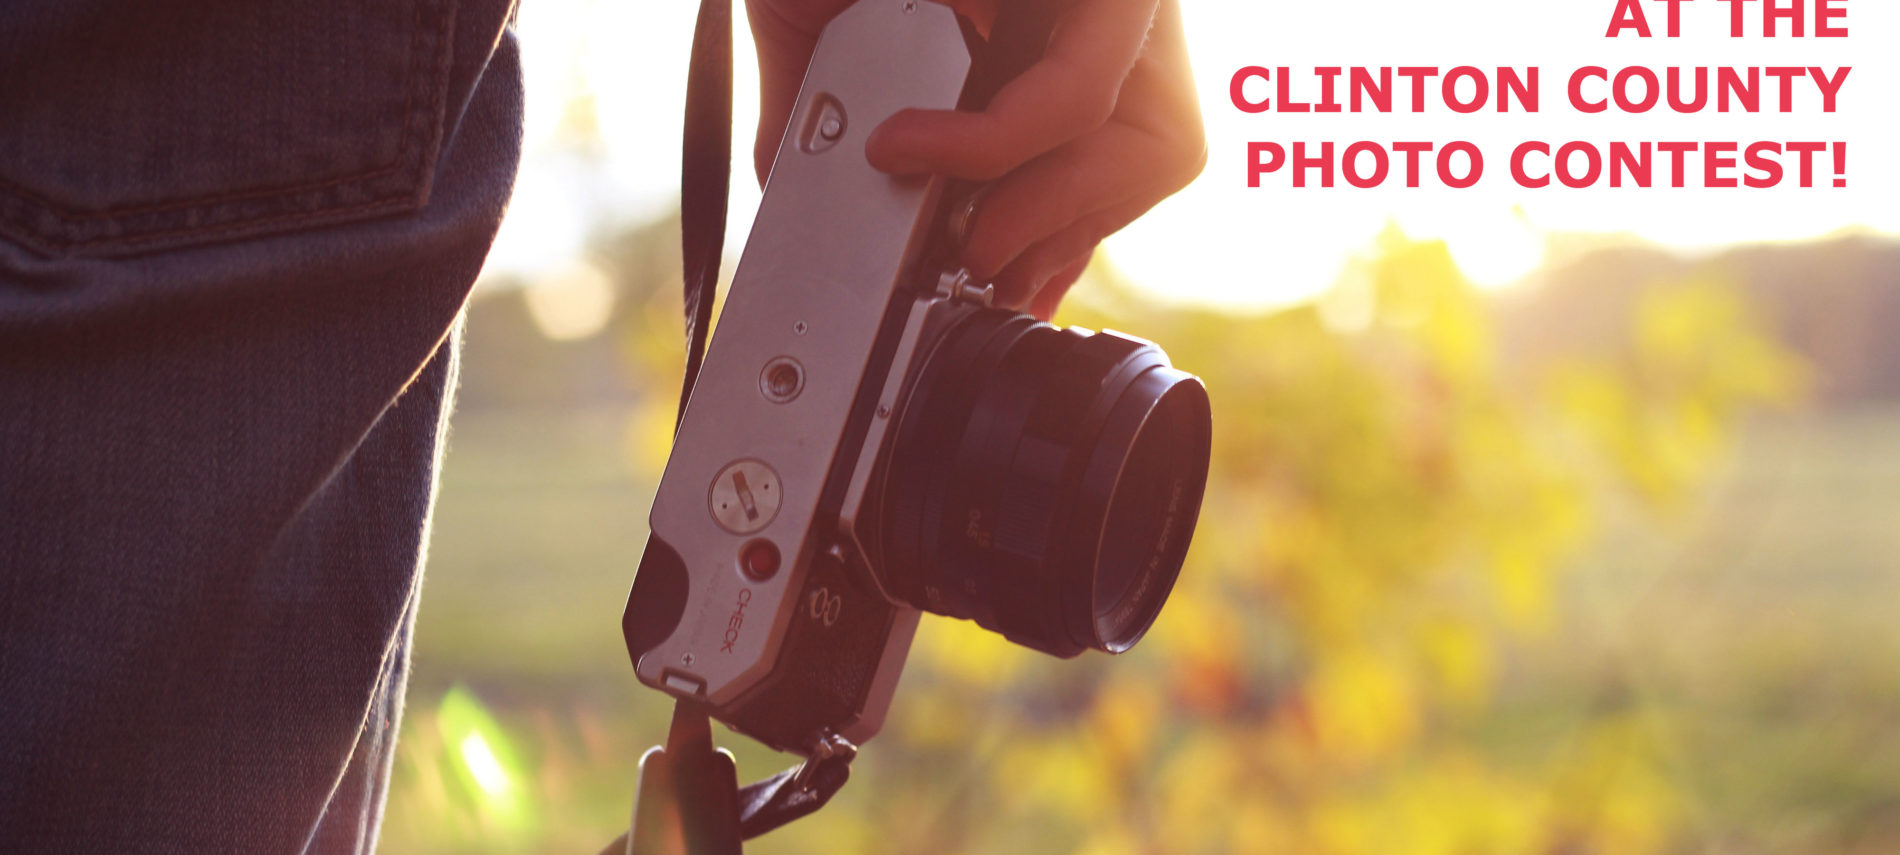 Close up photo of a camera with the title: Clinton County Photo Contest.